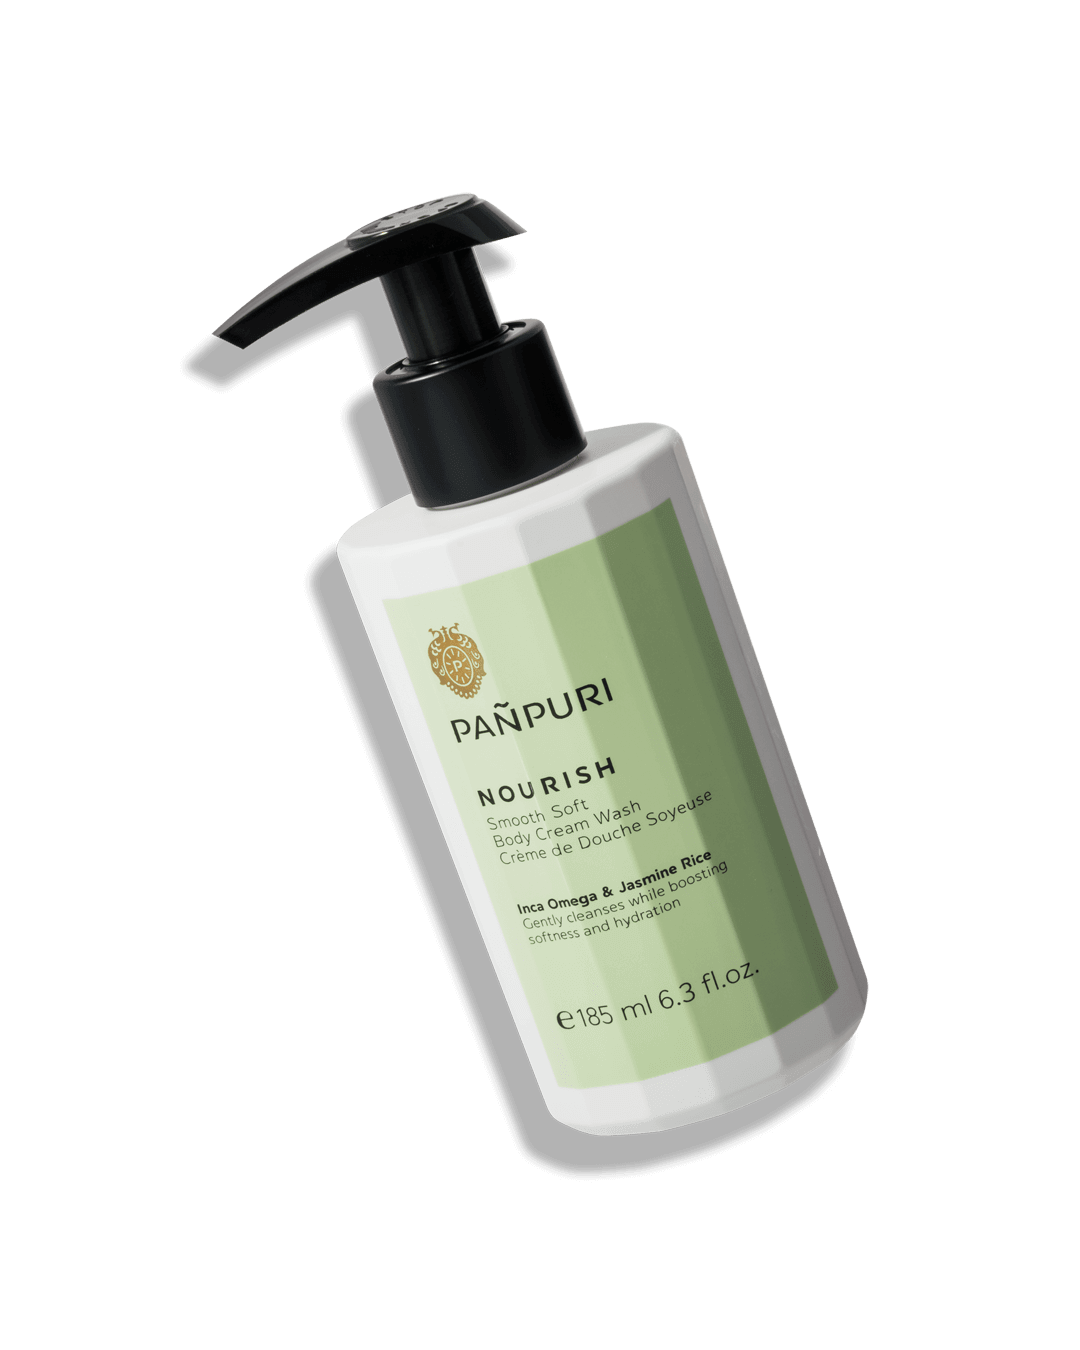 Nourish Body Cream Wash